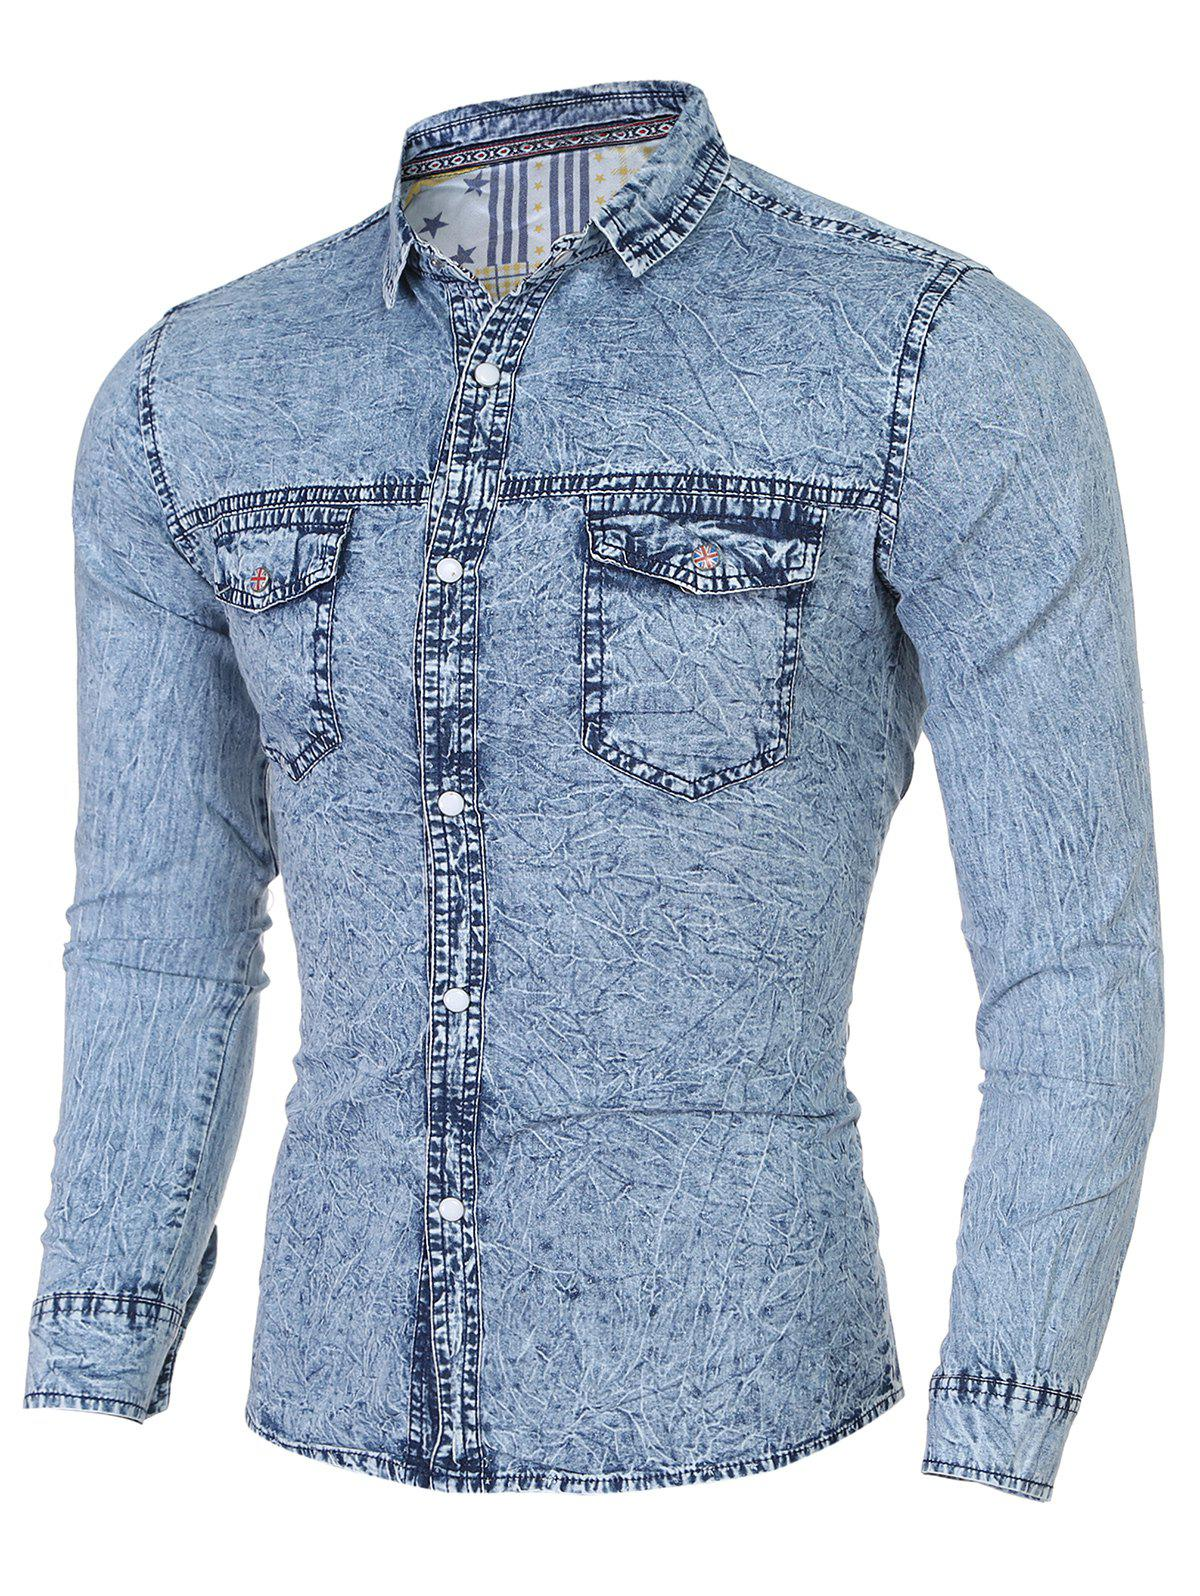 Fashion Turn-Down Collar Stars Print Long Sleeve Denim Shirt For Men - LIGHT BLUE XL